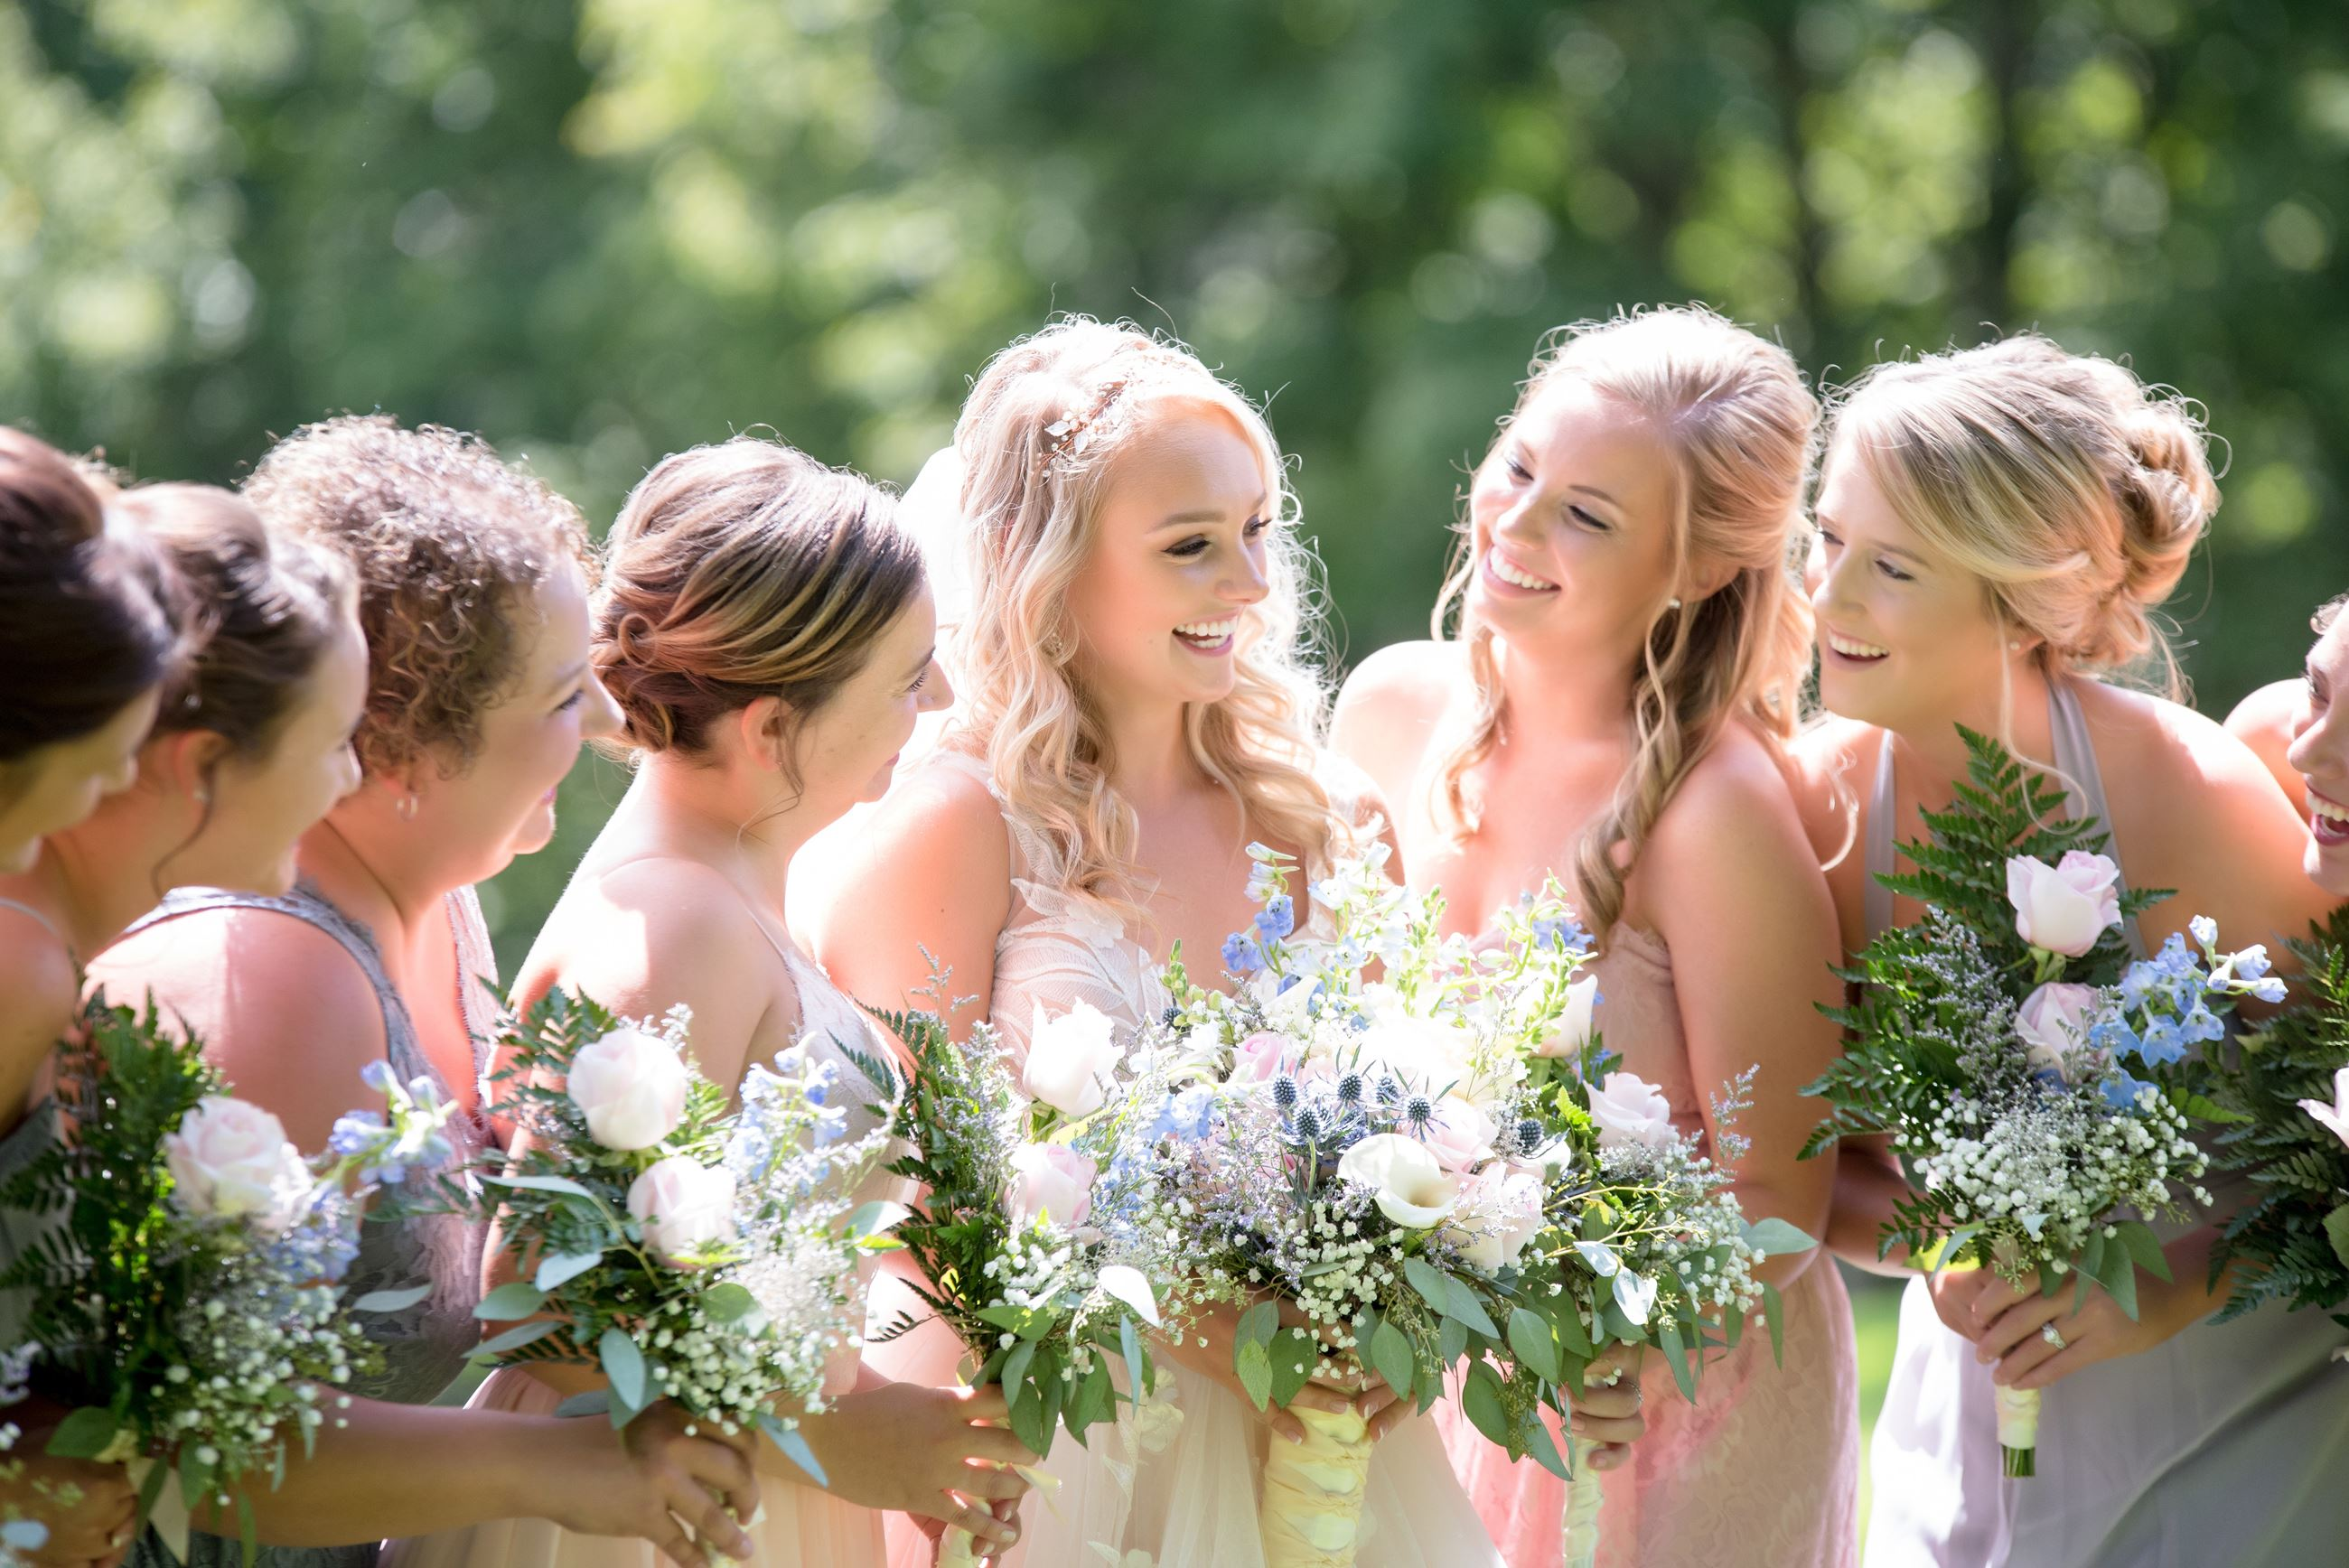 bouquets-bride-celebration-1454987